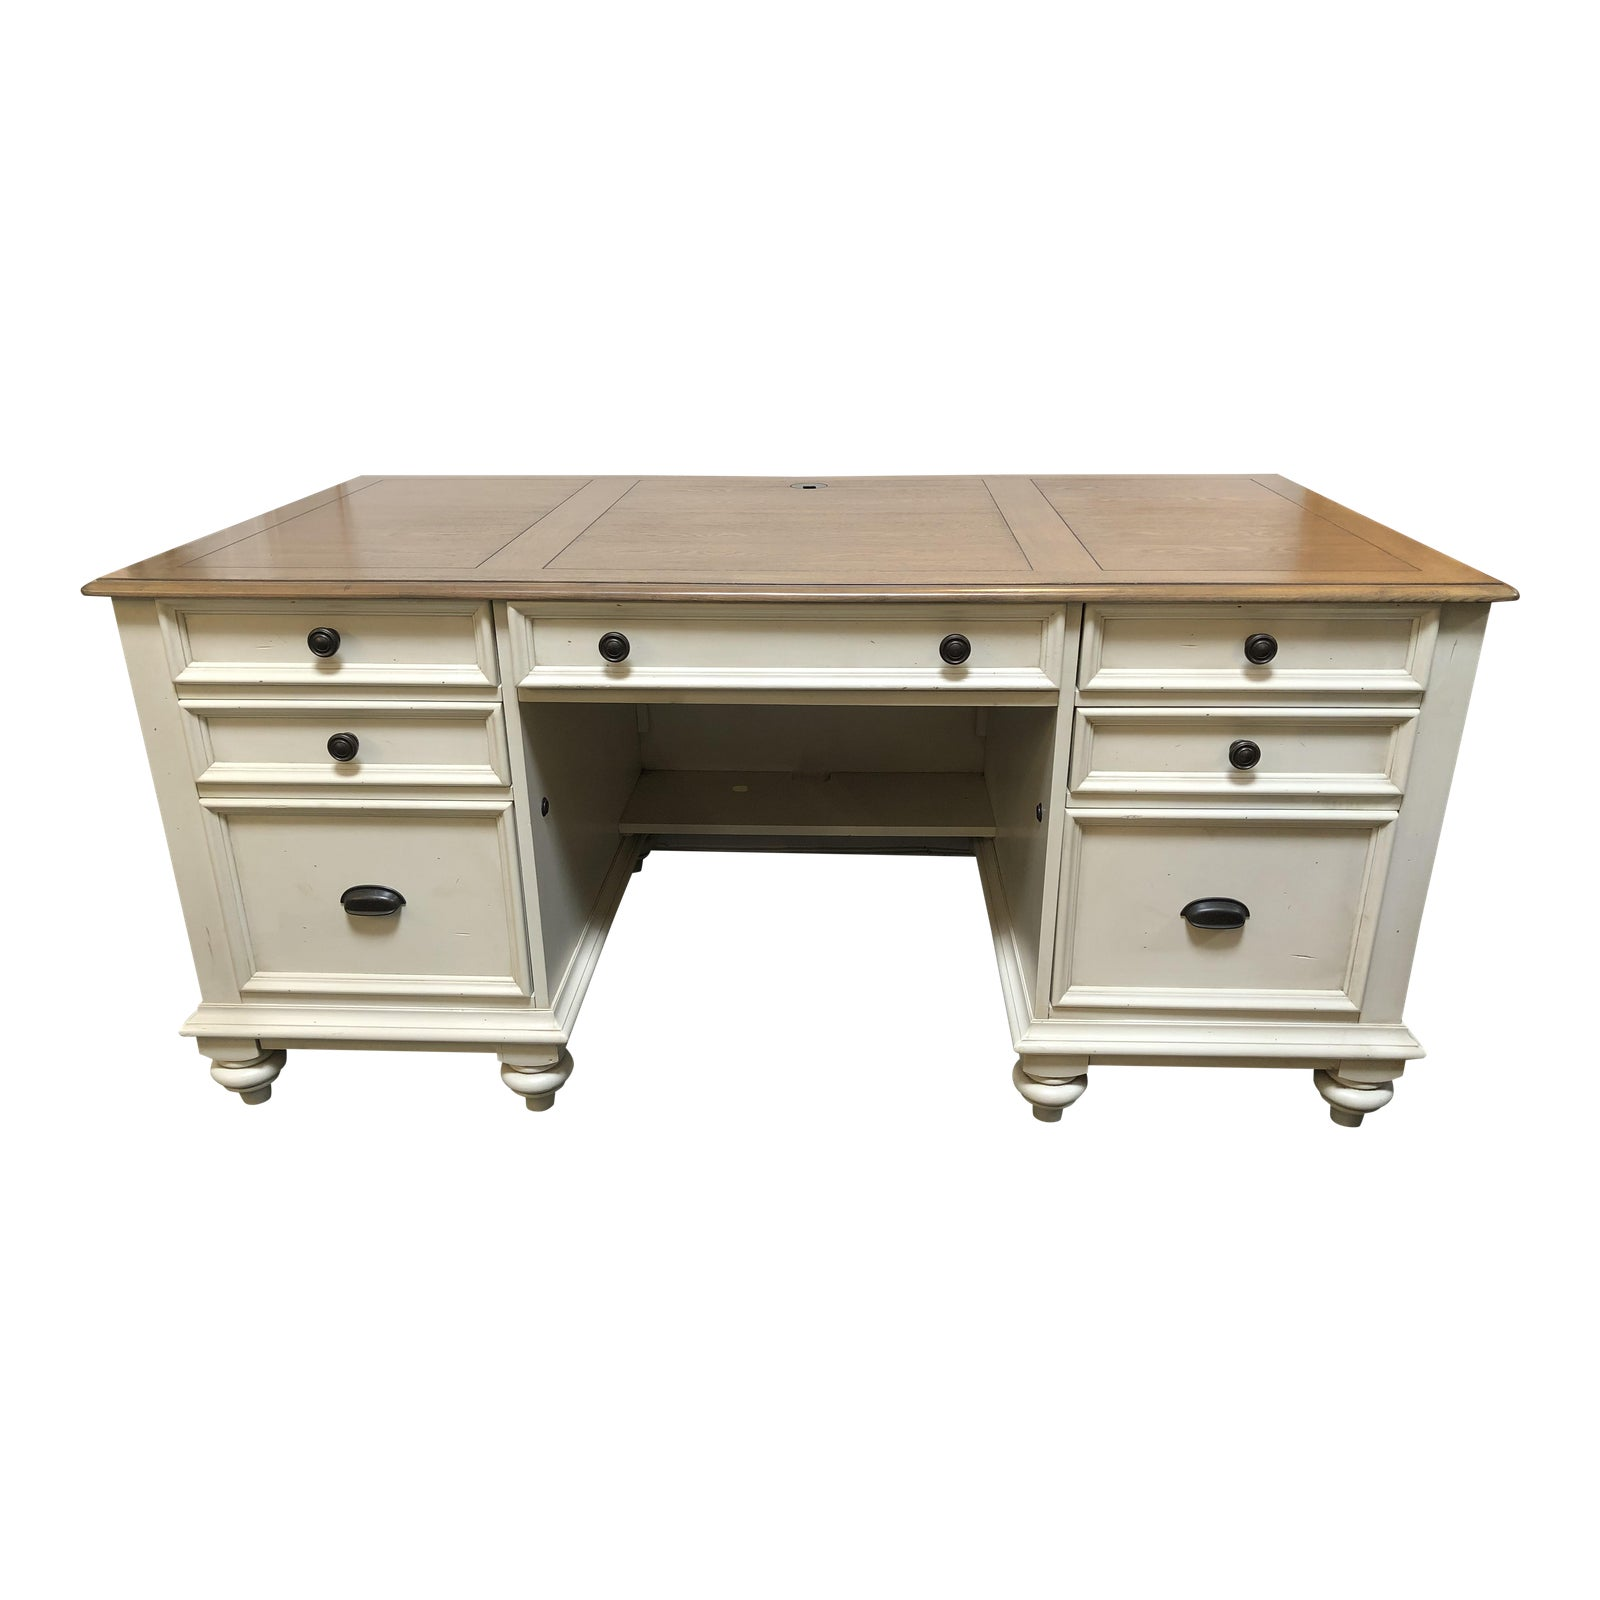 Prime Coventry Executive Desk By Riverside Furniture Design Plus Home Interior And Landscaping Palasignezvosmurscom